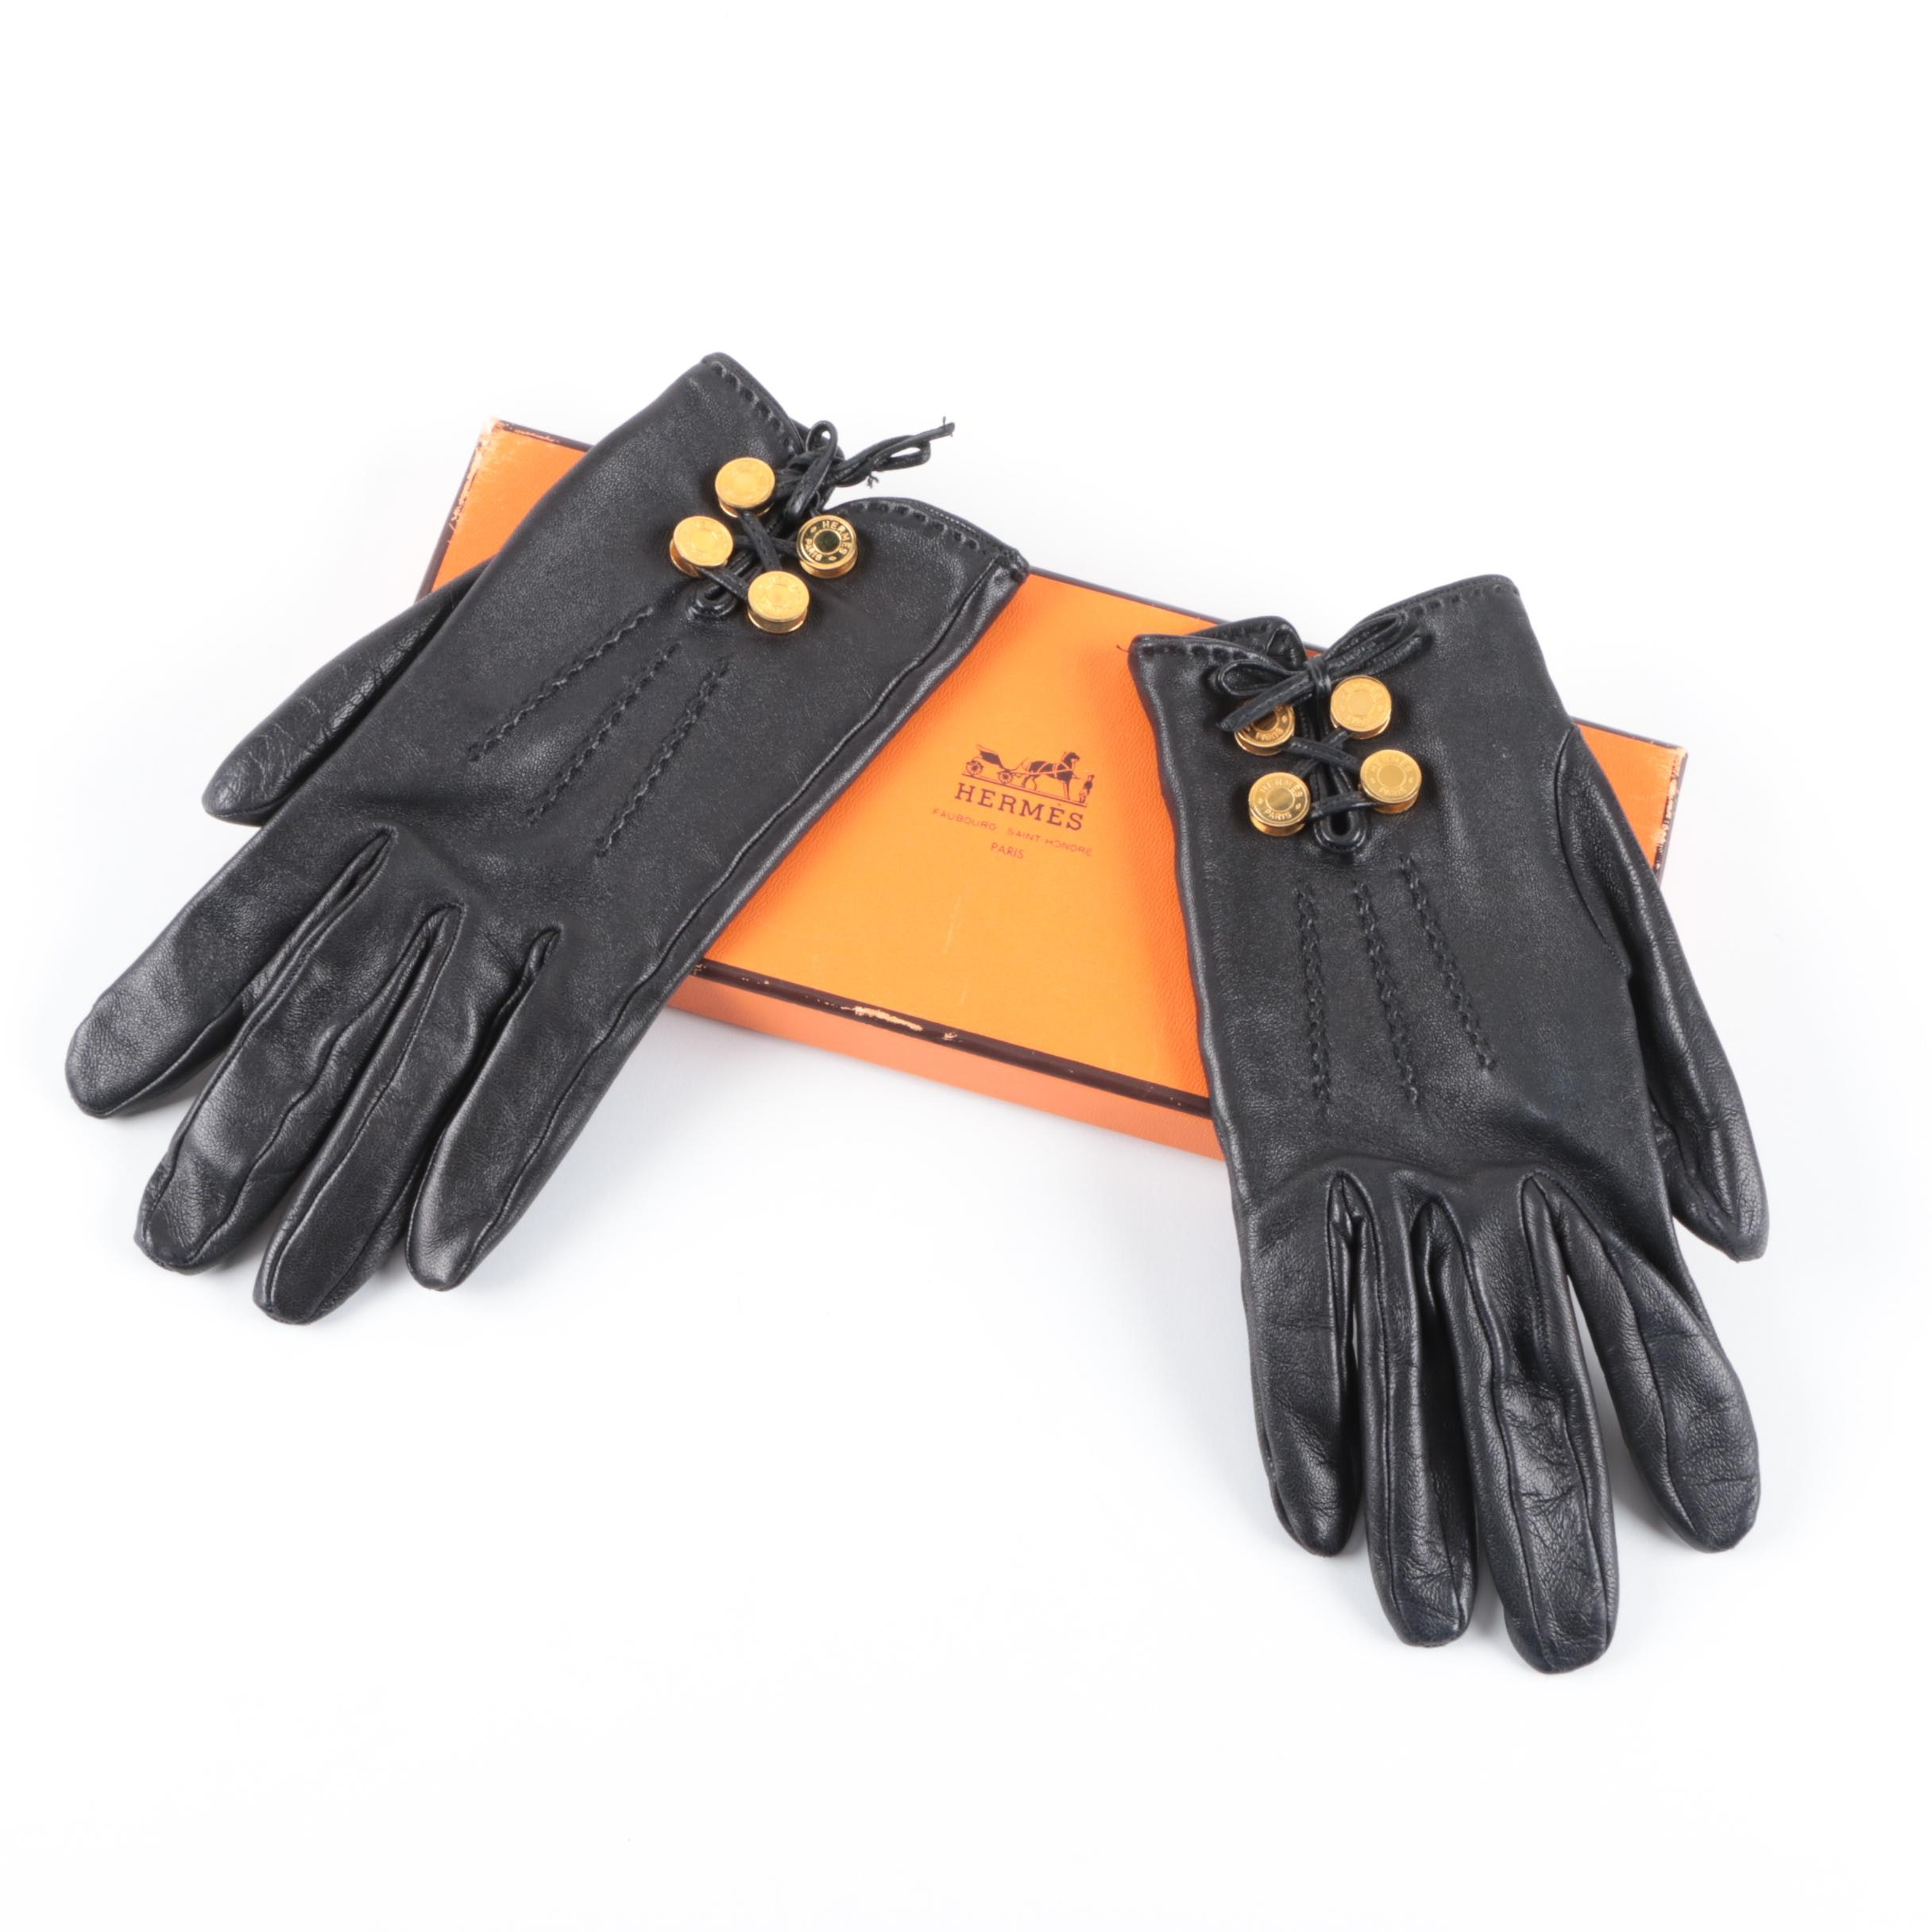 Hermès Paris Black Calf Leather Gloves